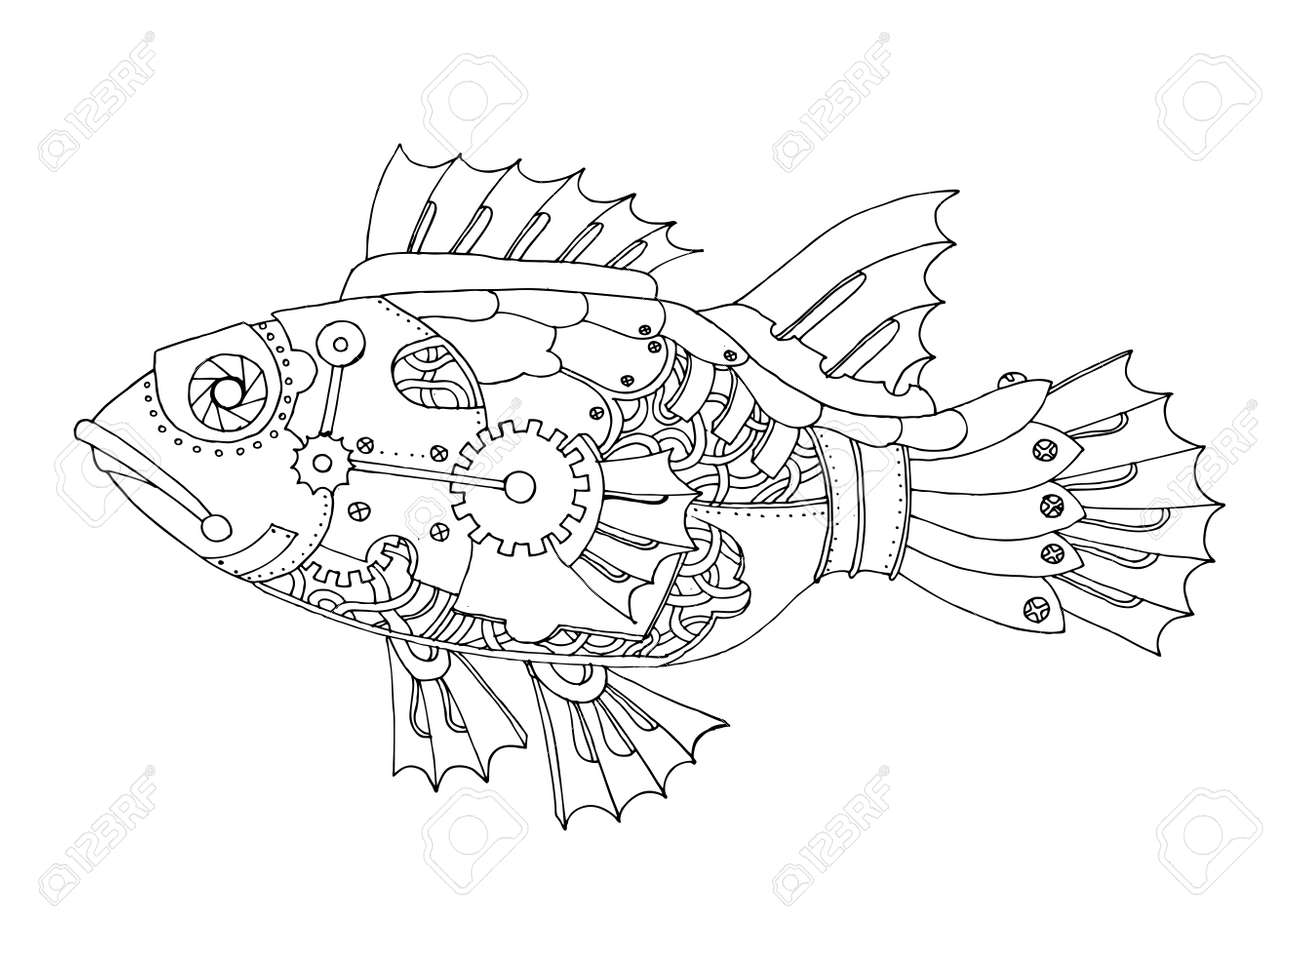 ste unk style fish coloring book vector royalty free cliparts  ste unk style fish coloring book vector stock vector 71412527